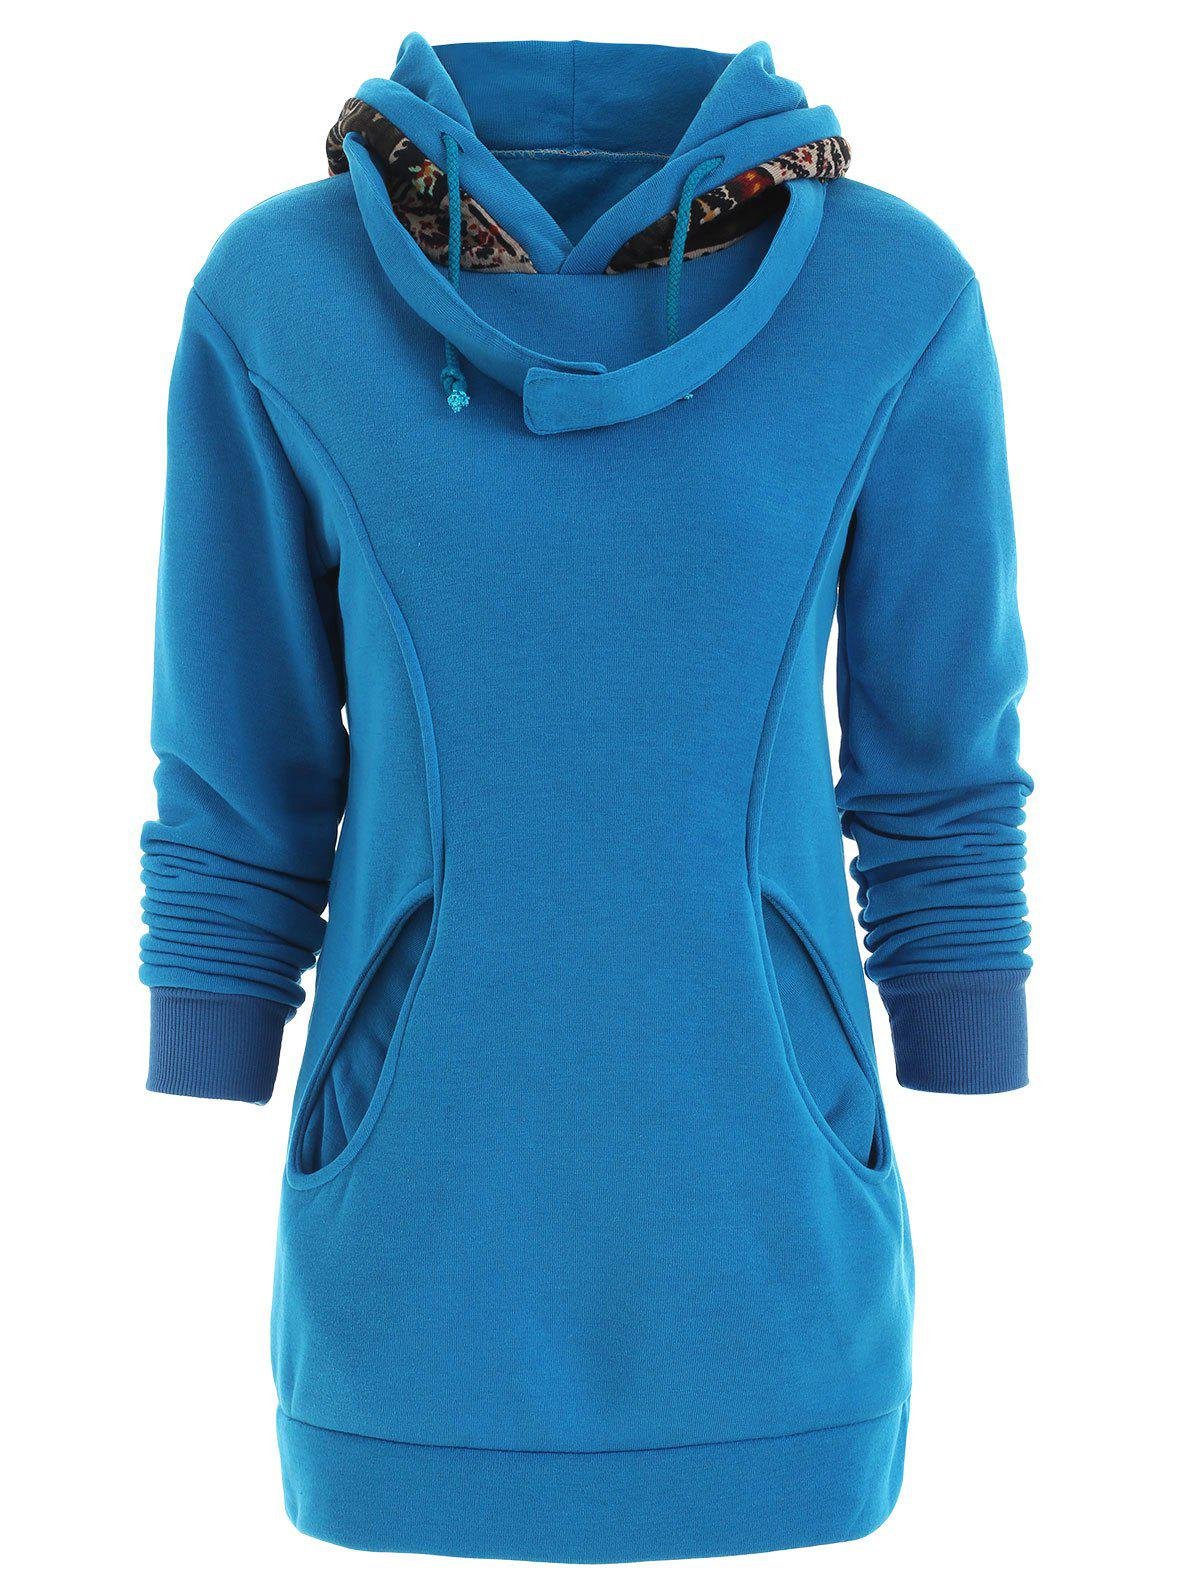 Discount Korean Thicken Solid Color Thicken Hooded Long Sleeves Women's Hoody